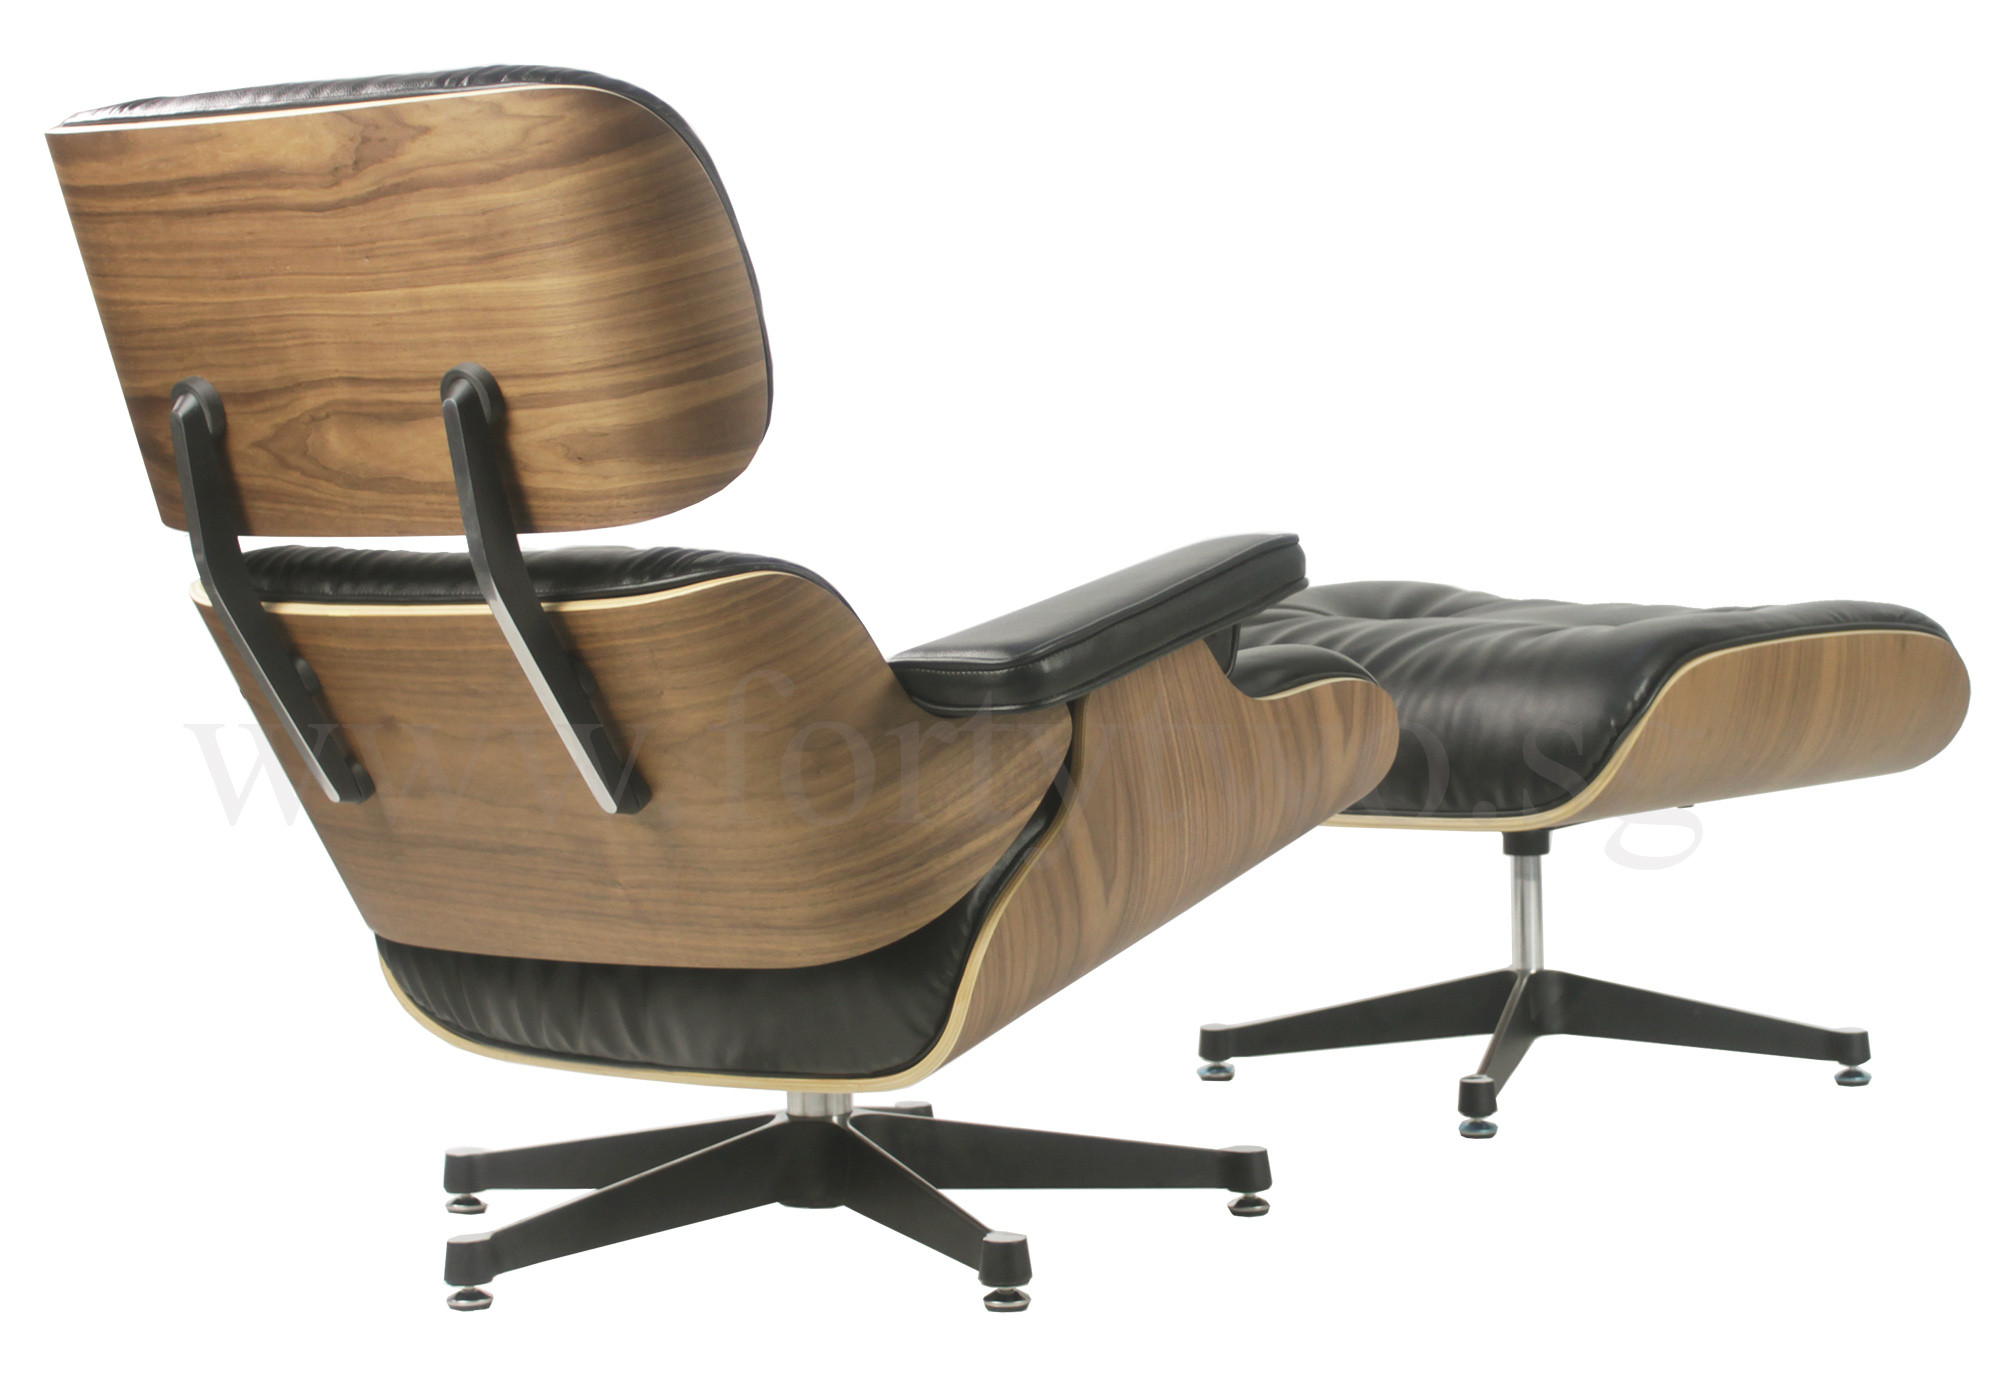 Designer replica eames lounge chair black furniture for Reproduction designer furniture